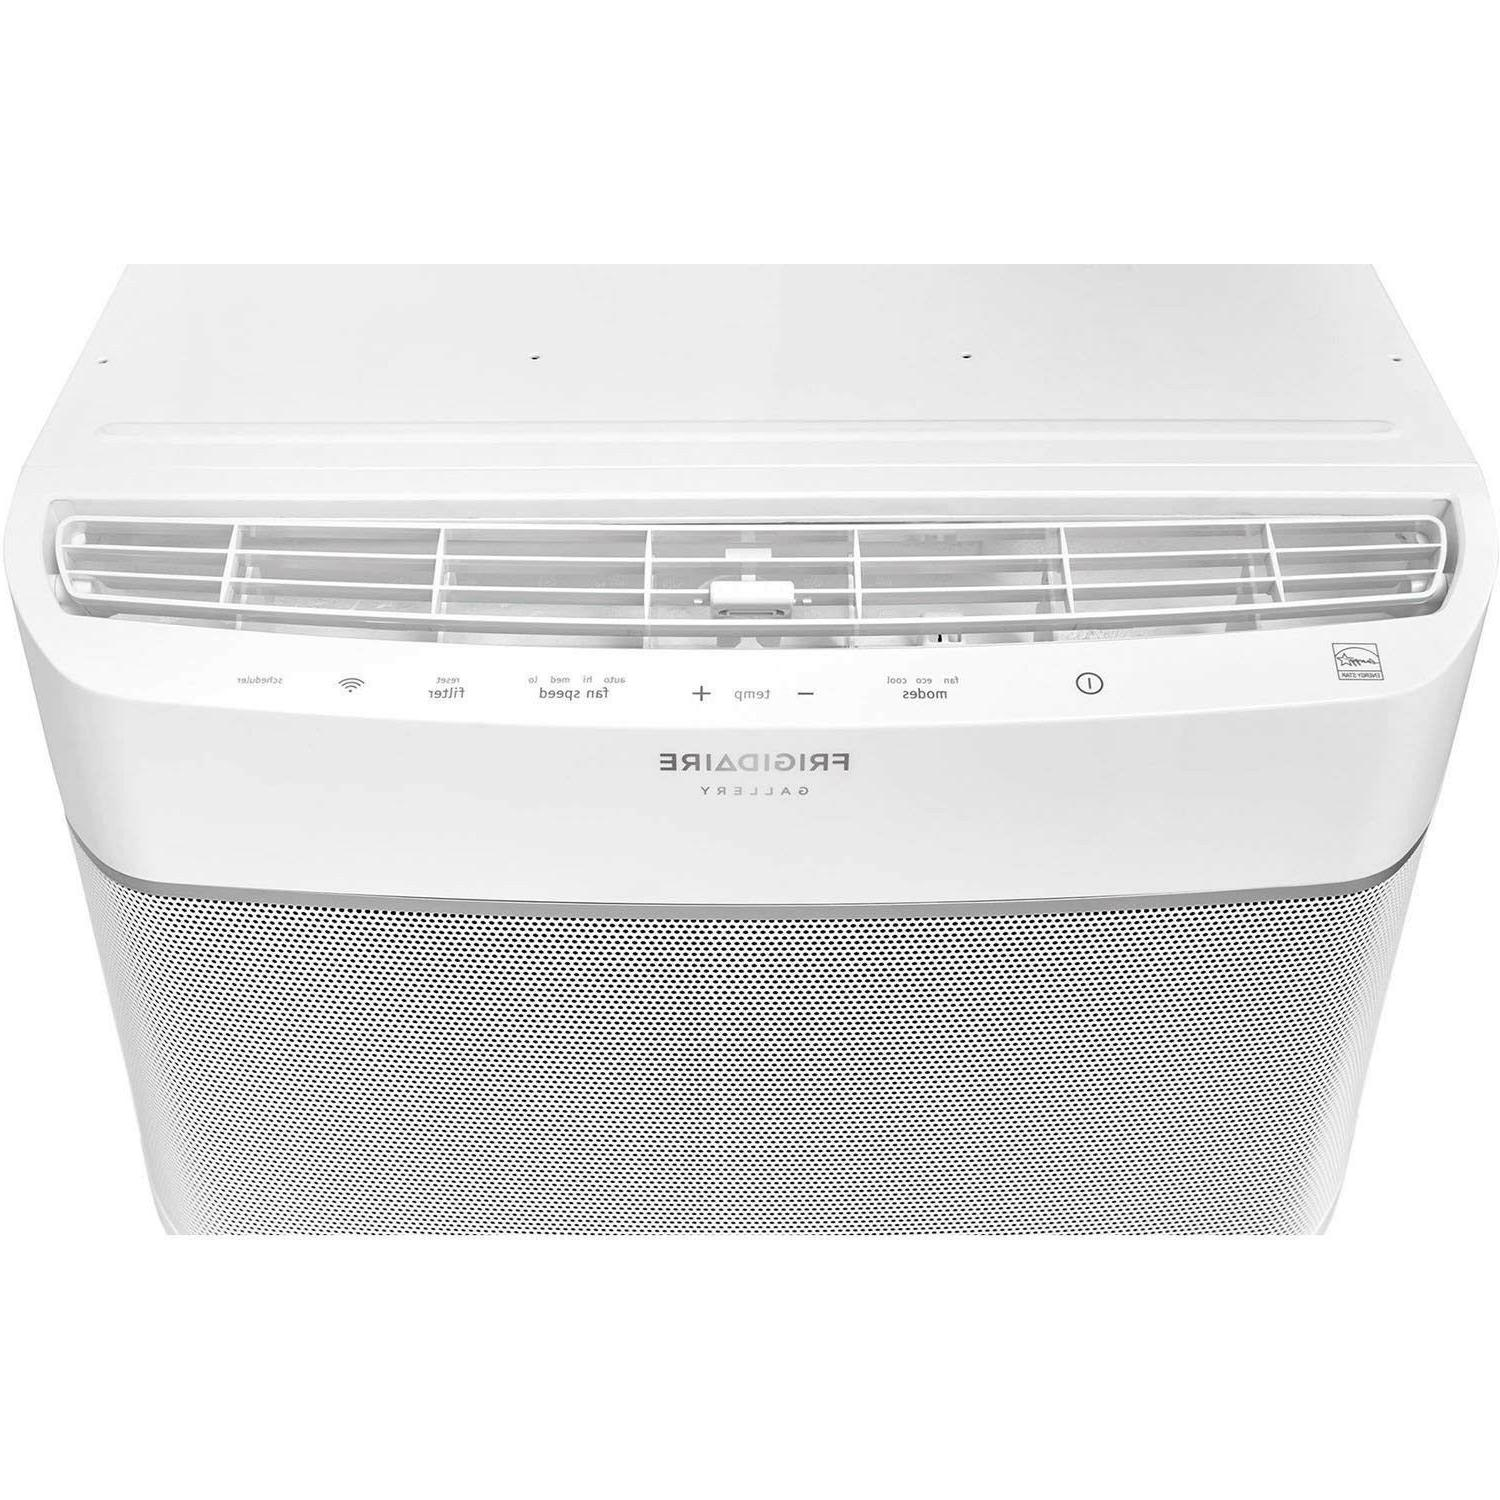 Frigidaire Cool Connect 115V 8,000 Btu Conditioner, White